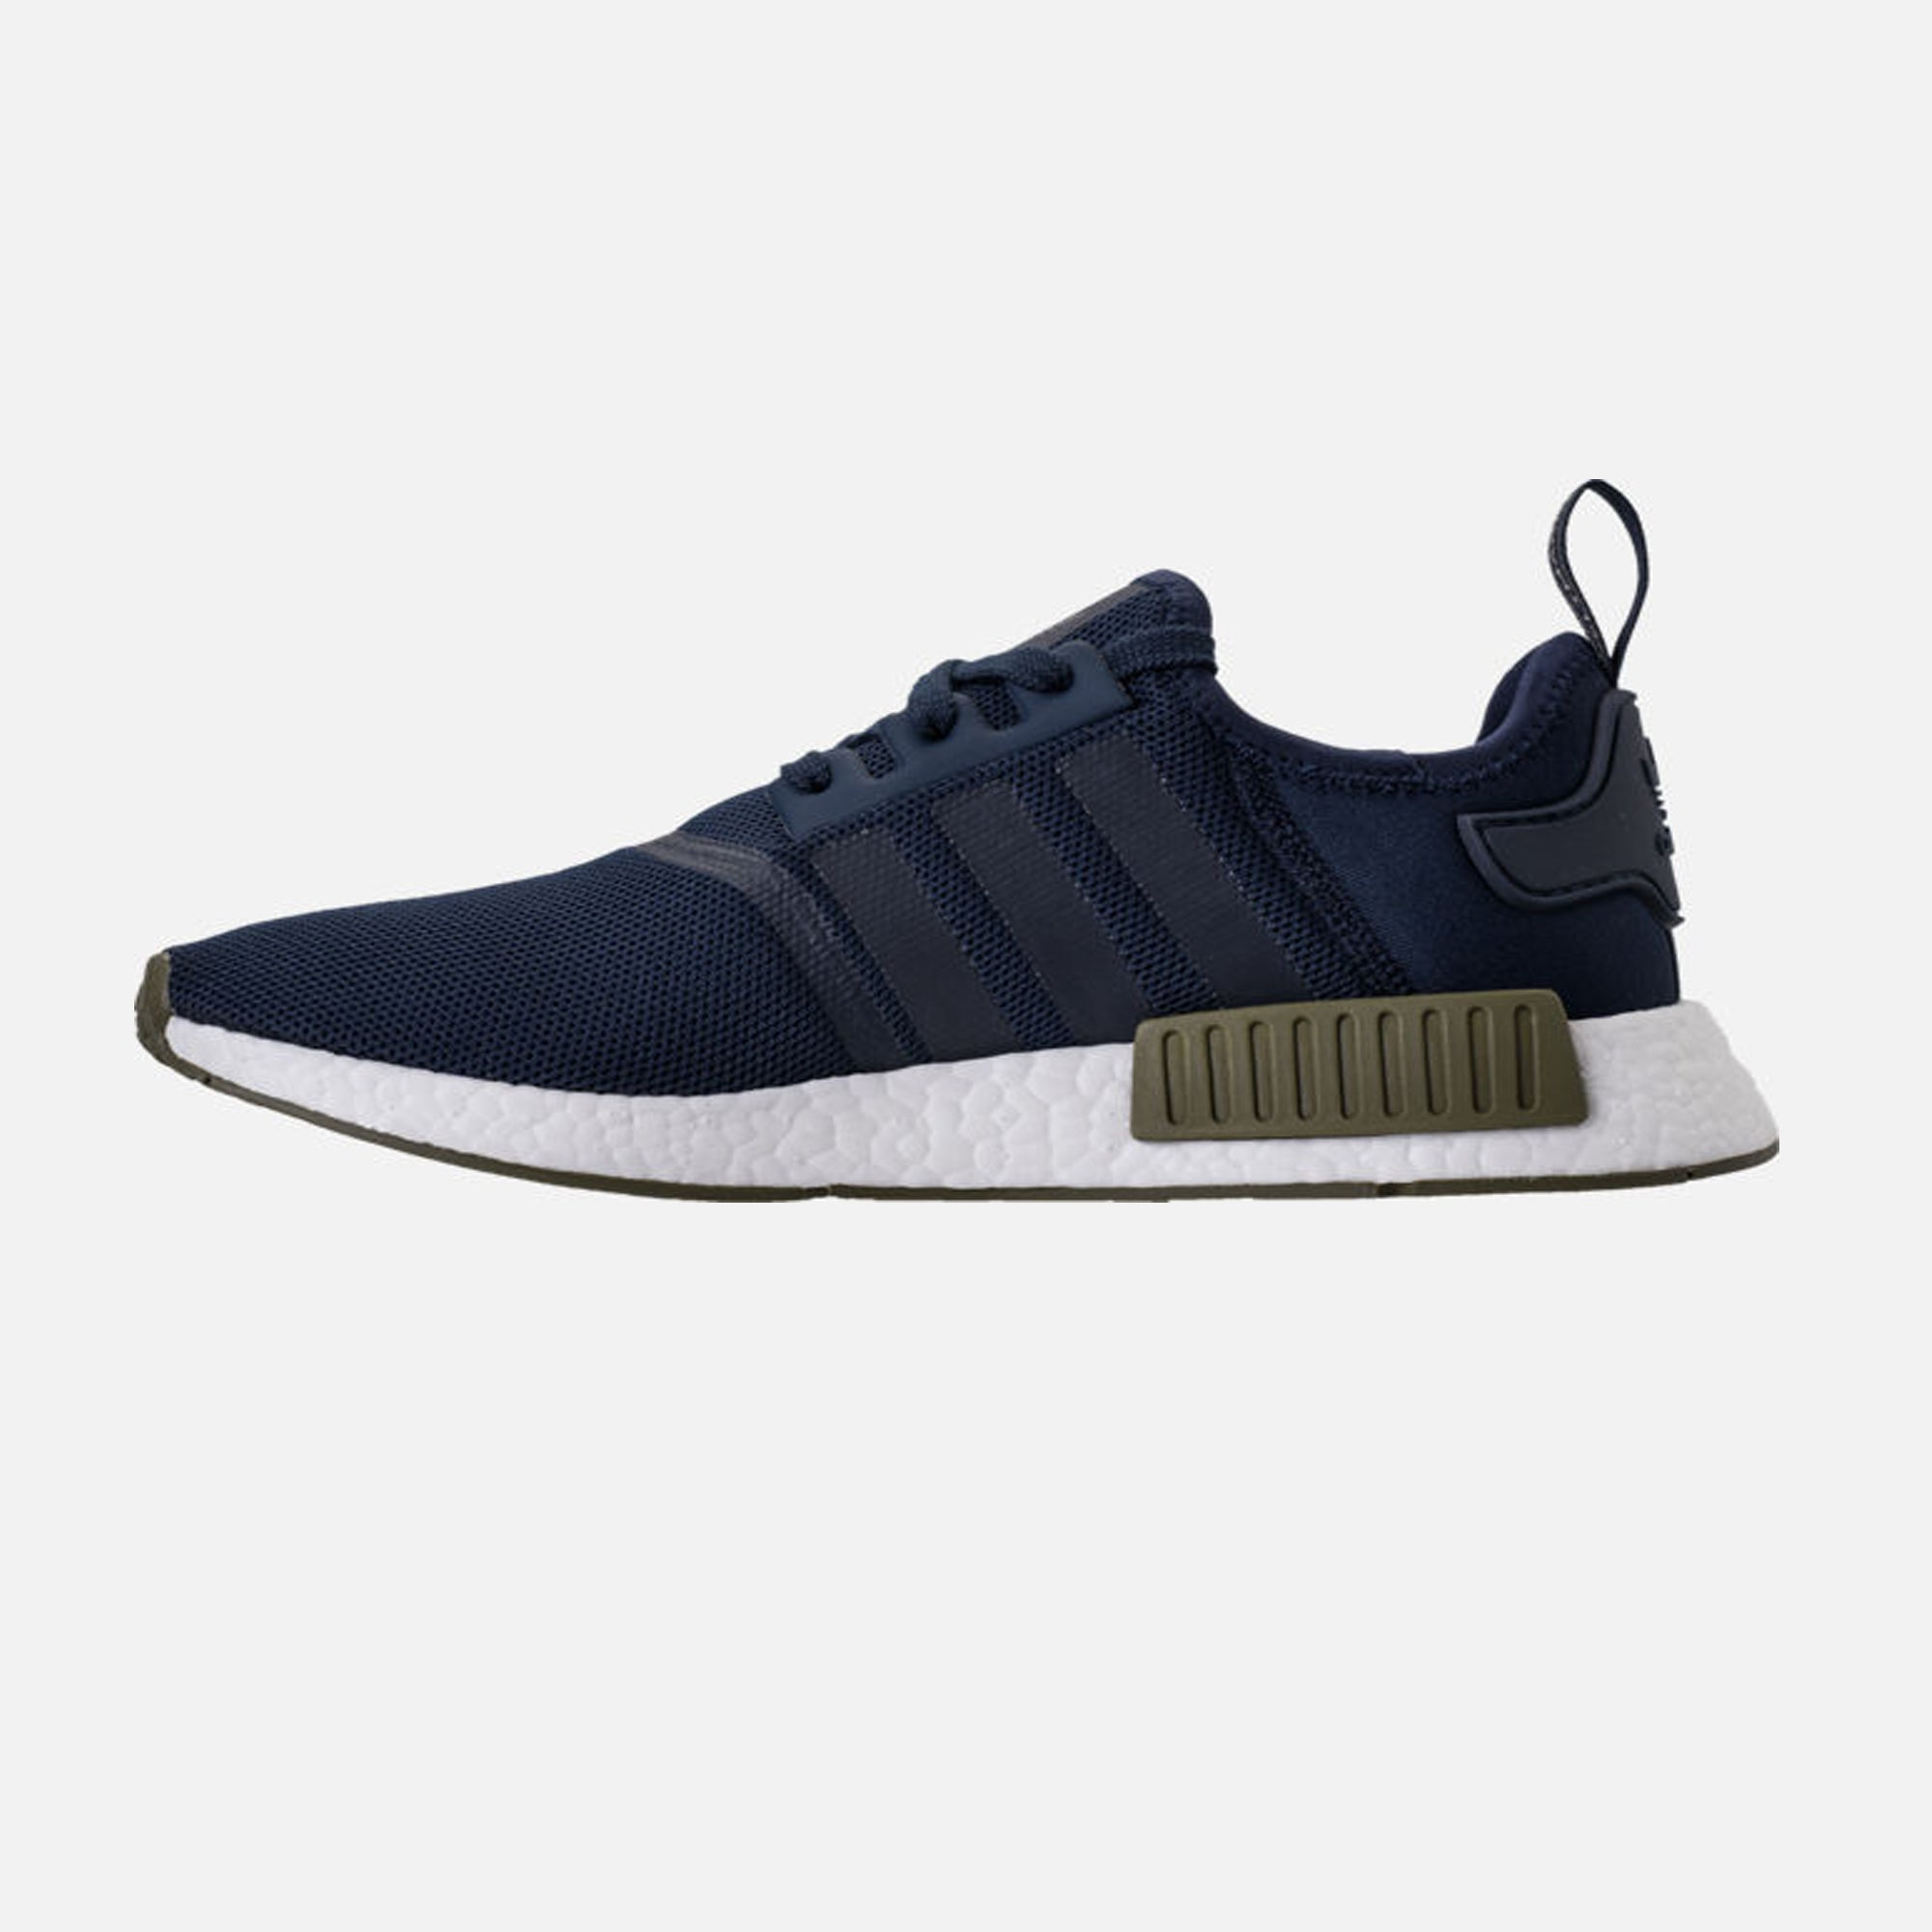 Adidas Nmd Y3 melbryevents.co.uk